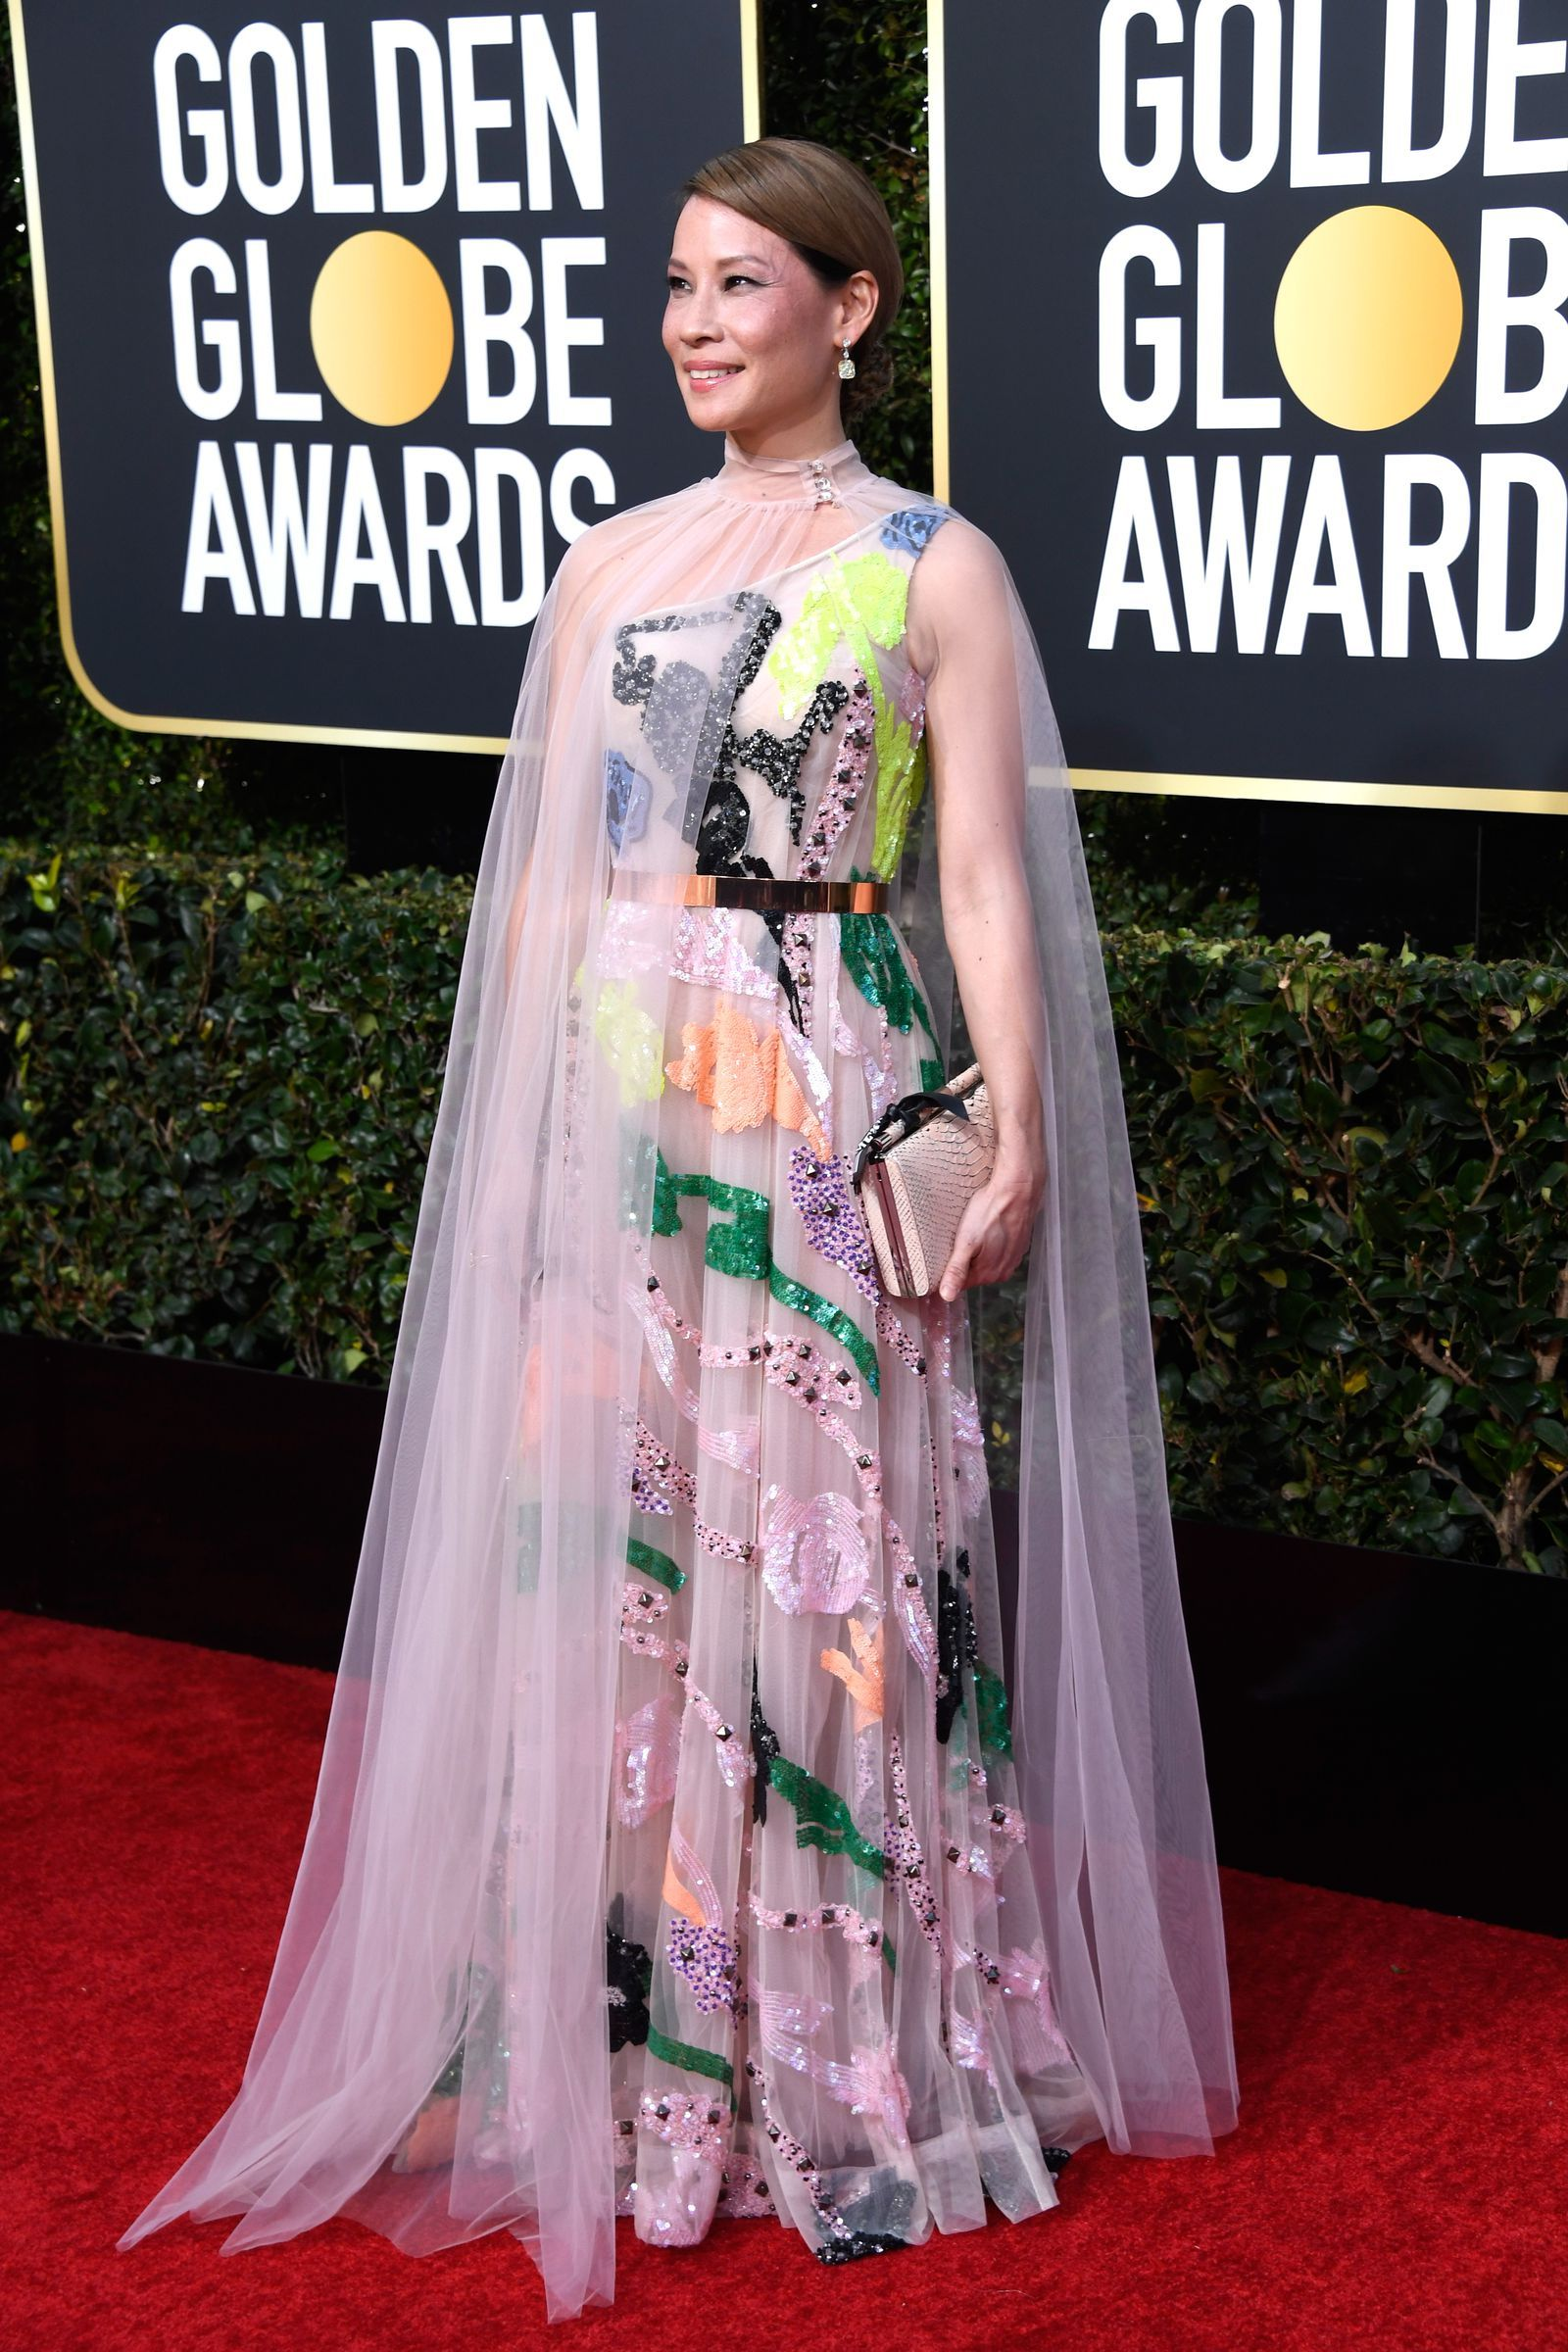 f65744a637e7 The best celebrity dresses from the Golden Globes red carpet